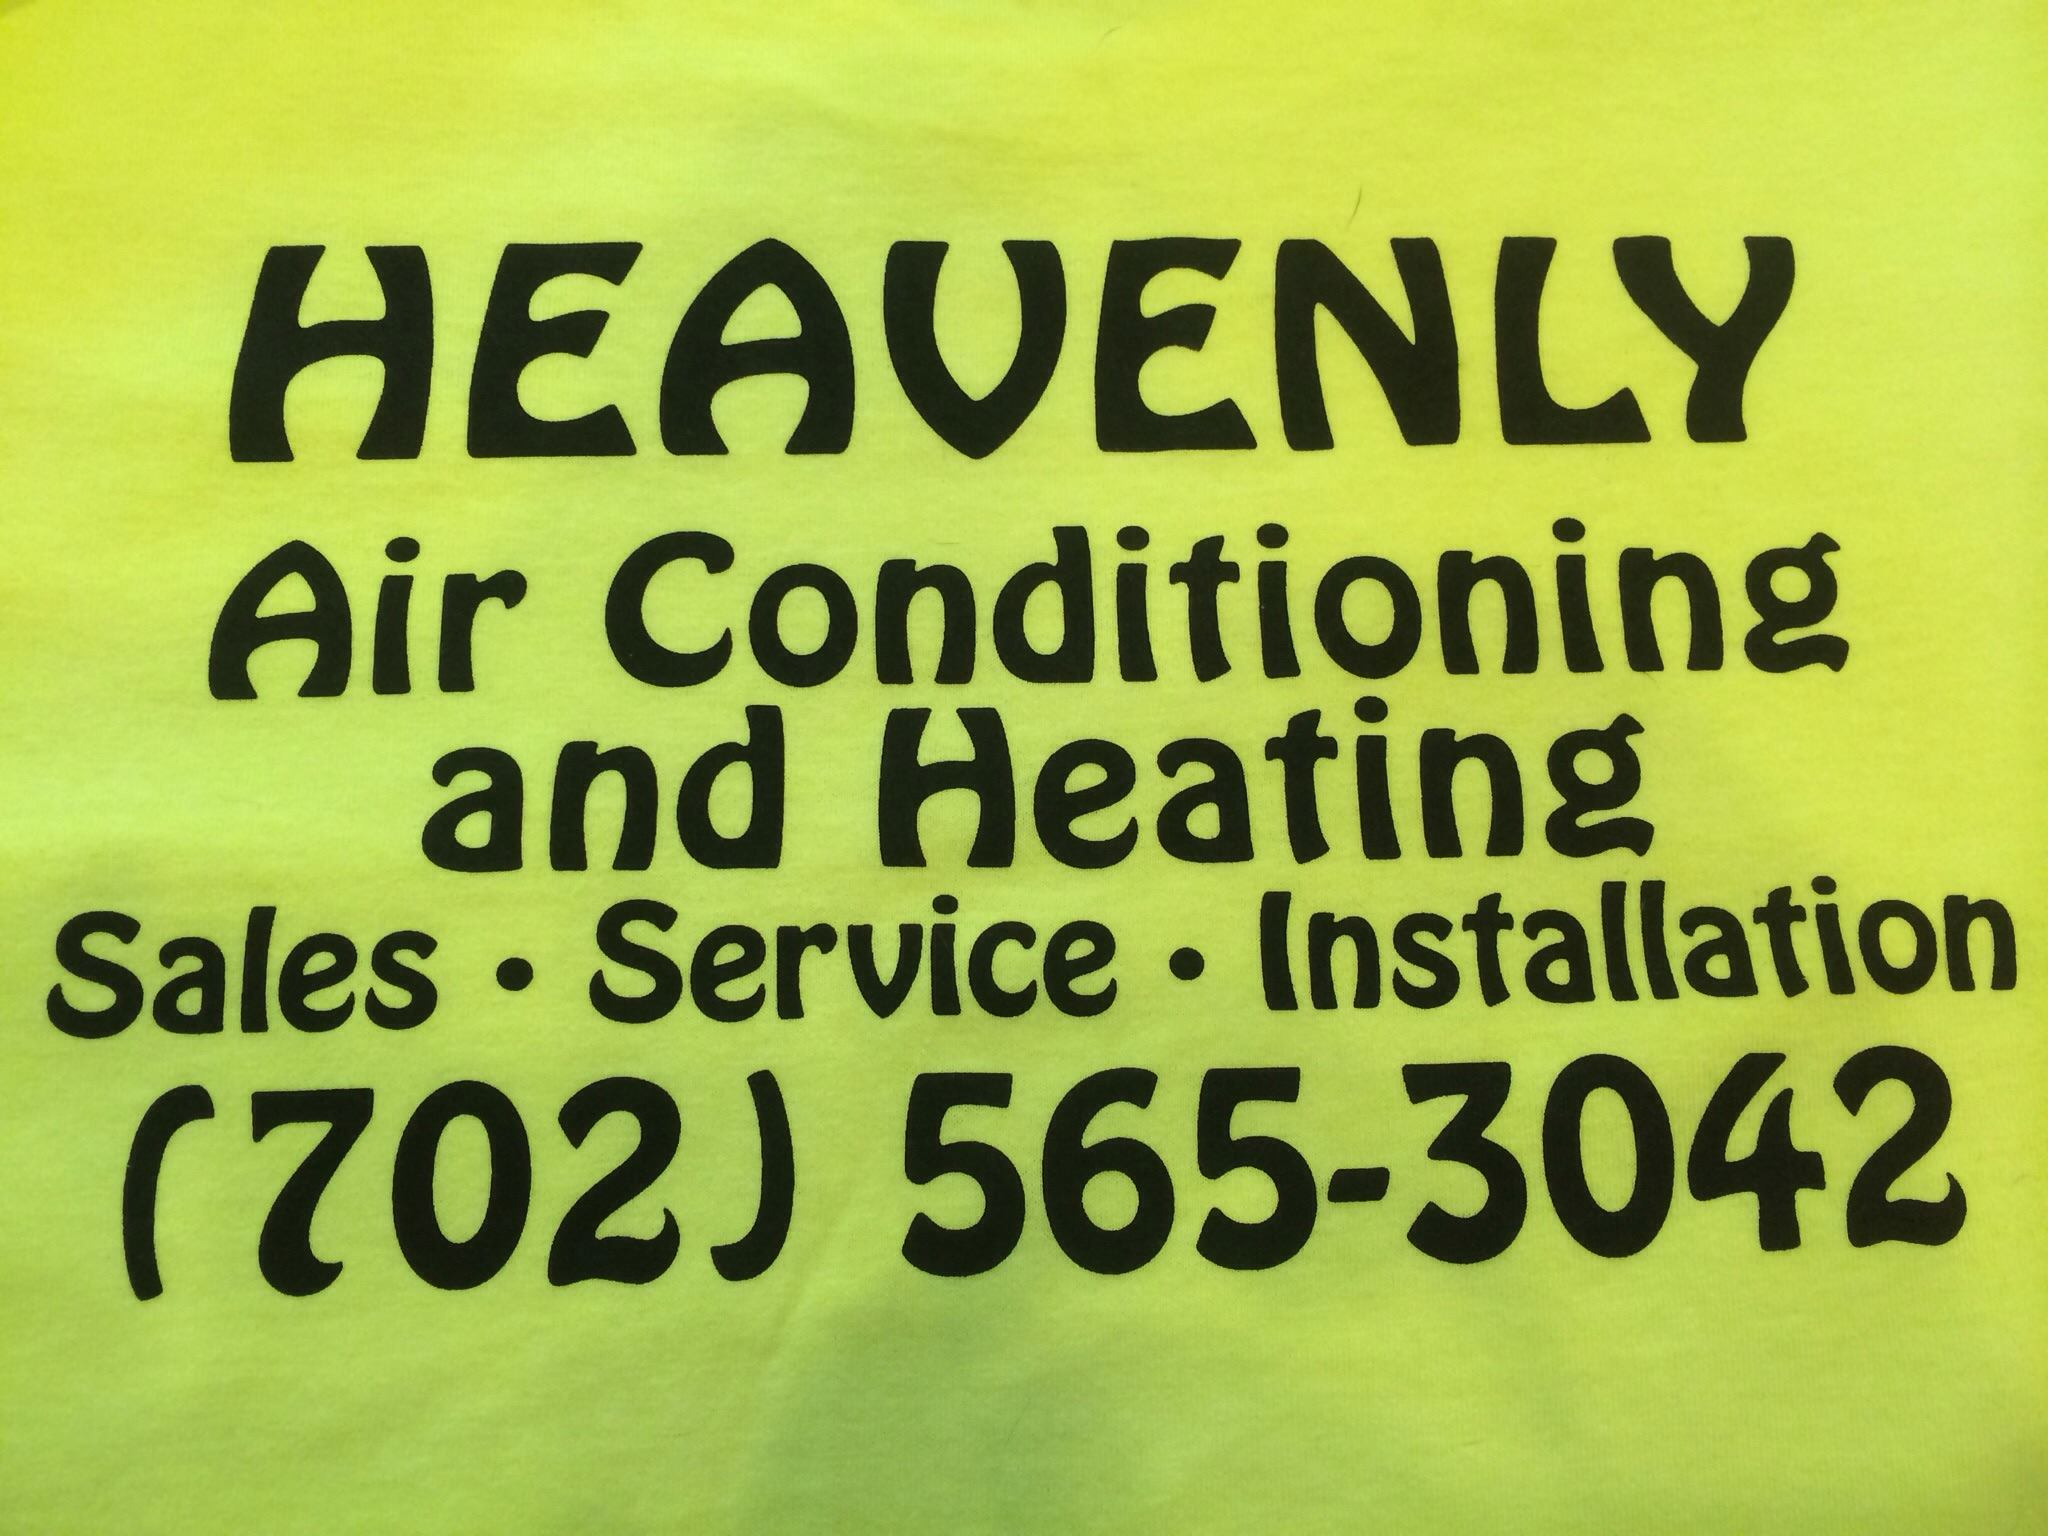 Heavenly Air Conditioning and Heating - Henderson, NV 89002 - (702)565-3042 | ShowMeLocal.com